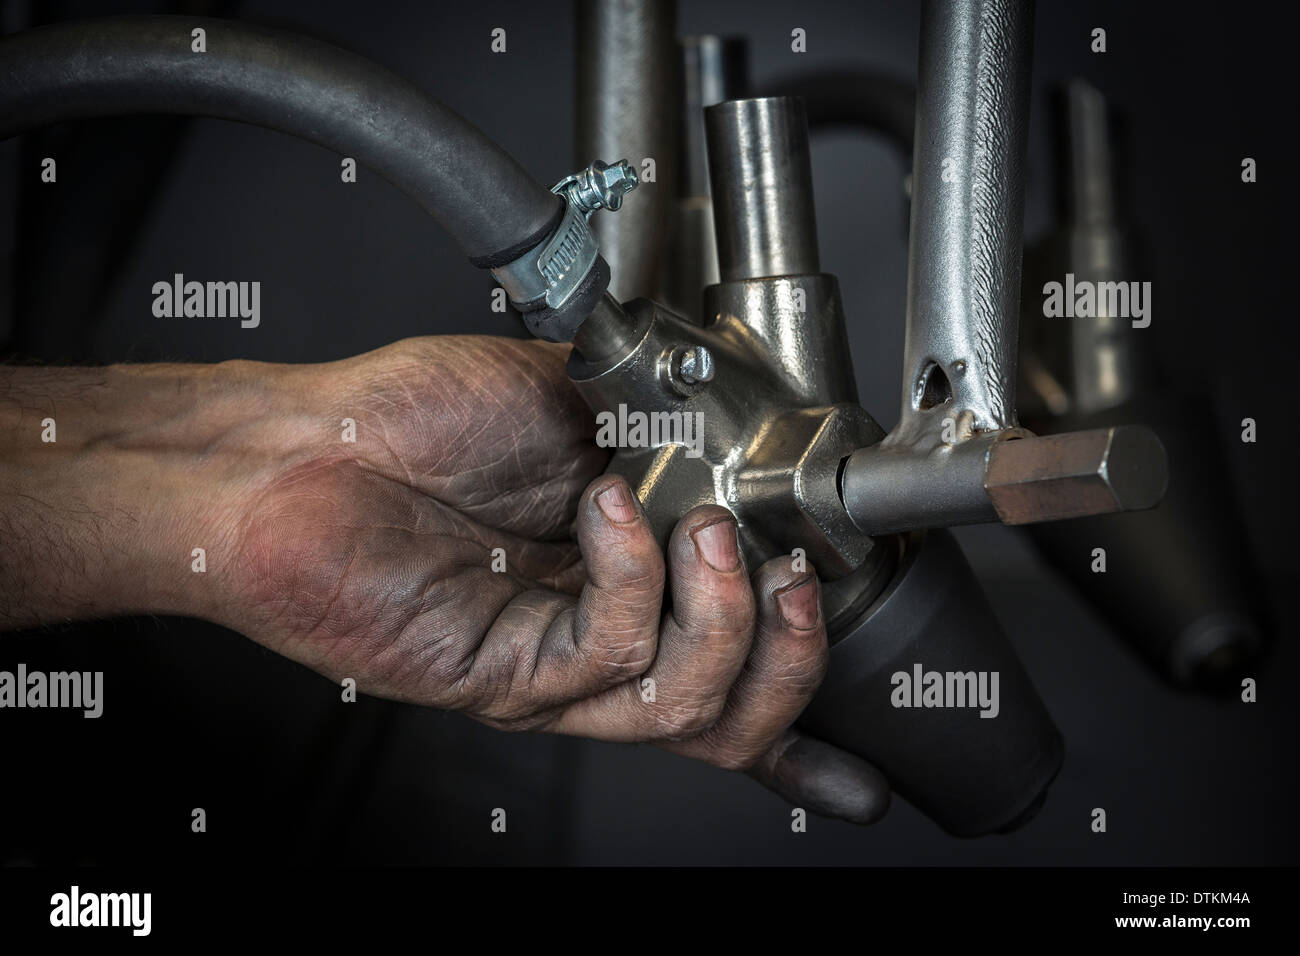 A manual worker's hand. Here an operator positioning a shot blasting machine nozzle. Positionnement d'une buse de grenailleuse. - Stock Image